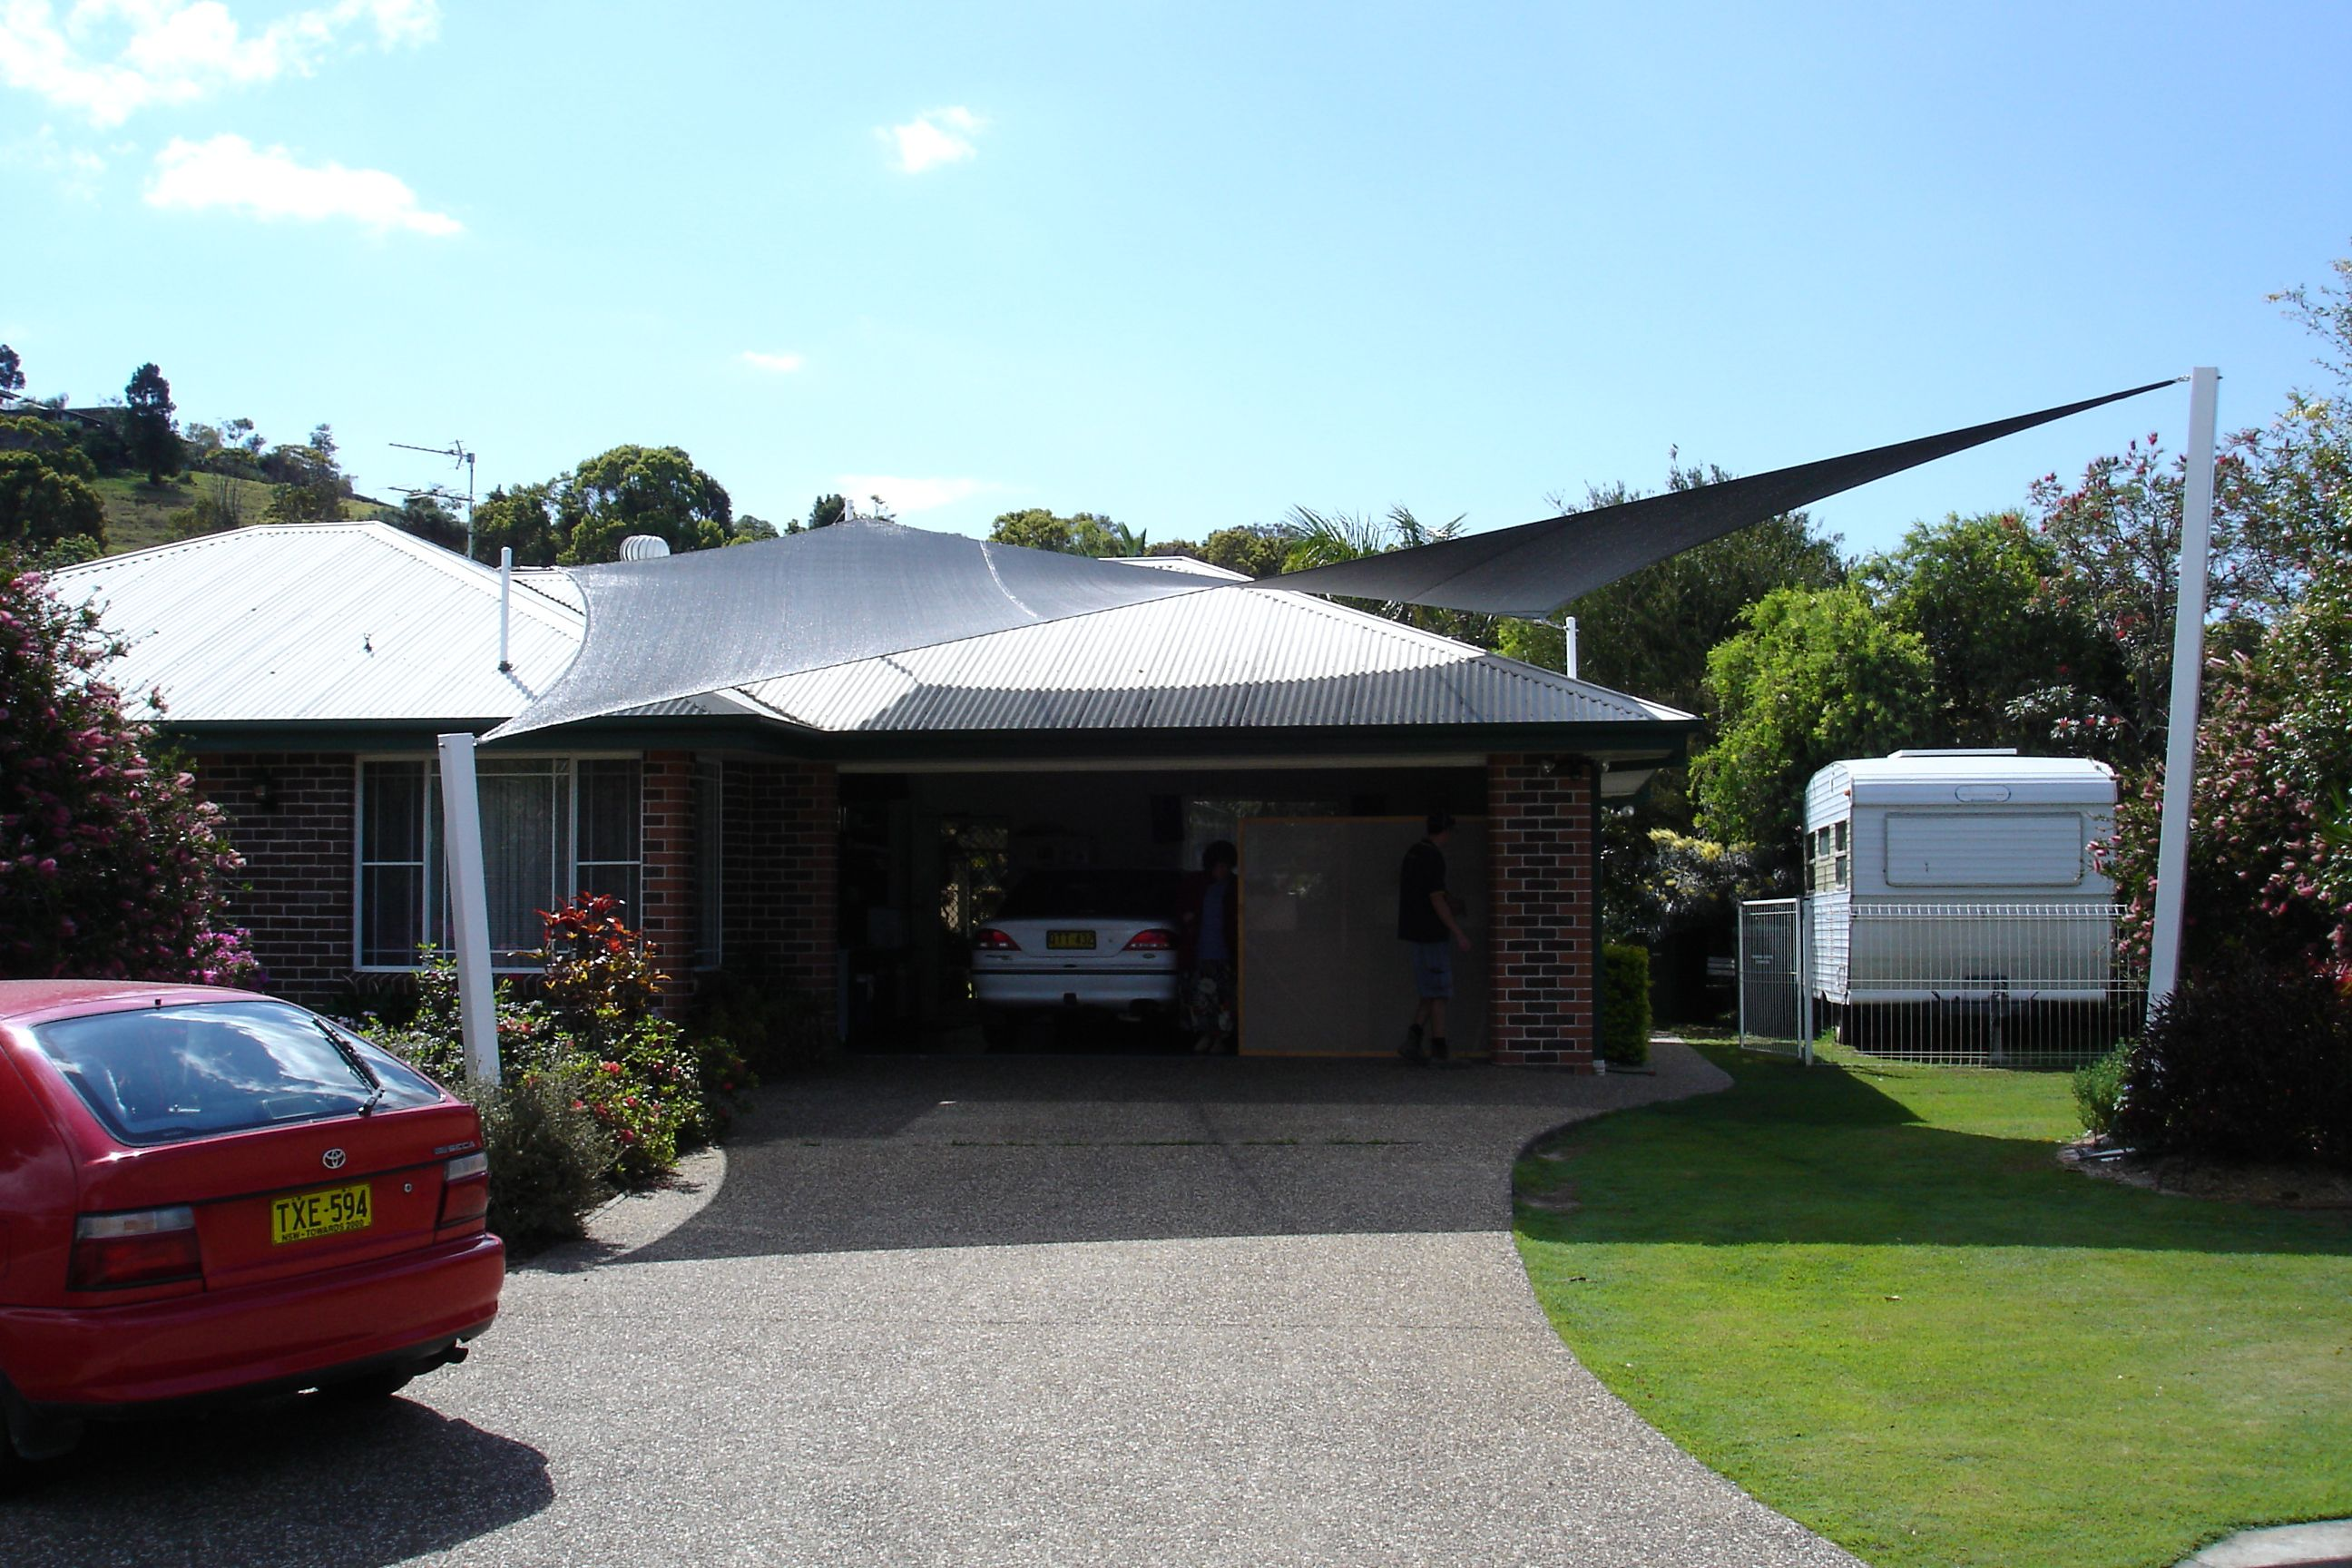 Shade Structure Or Permanent Structure How To Choose